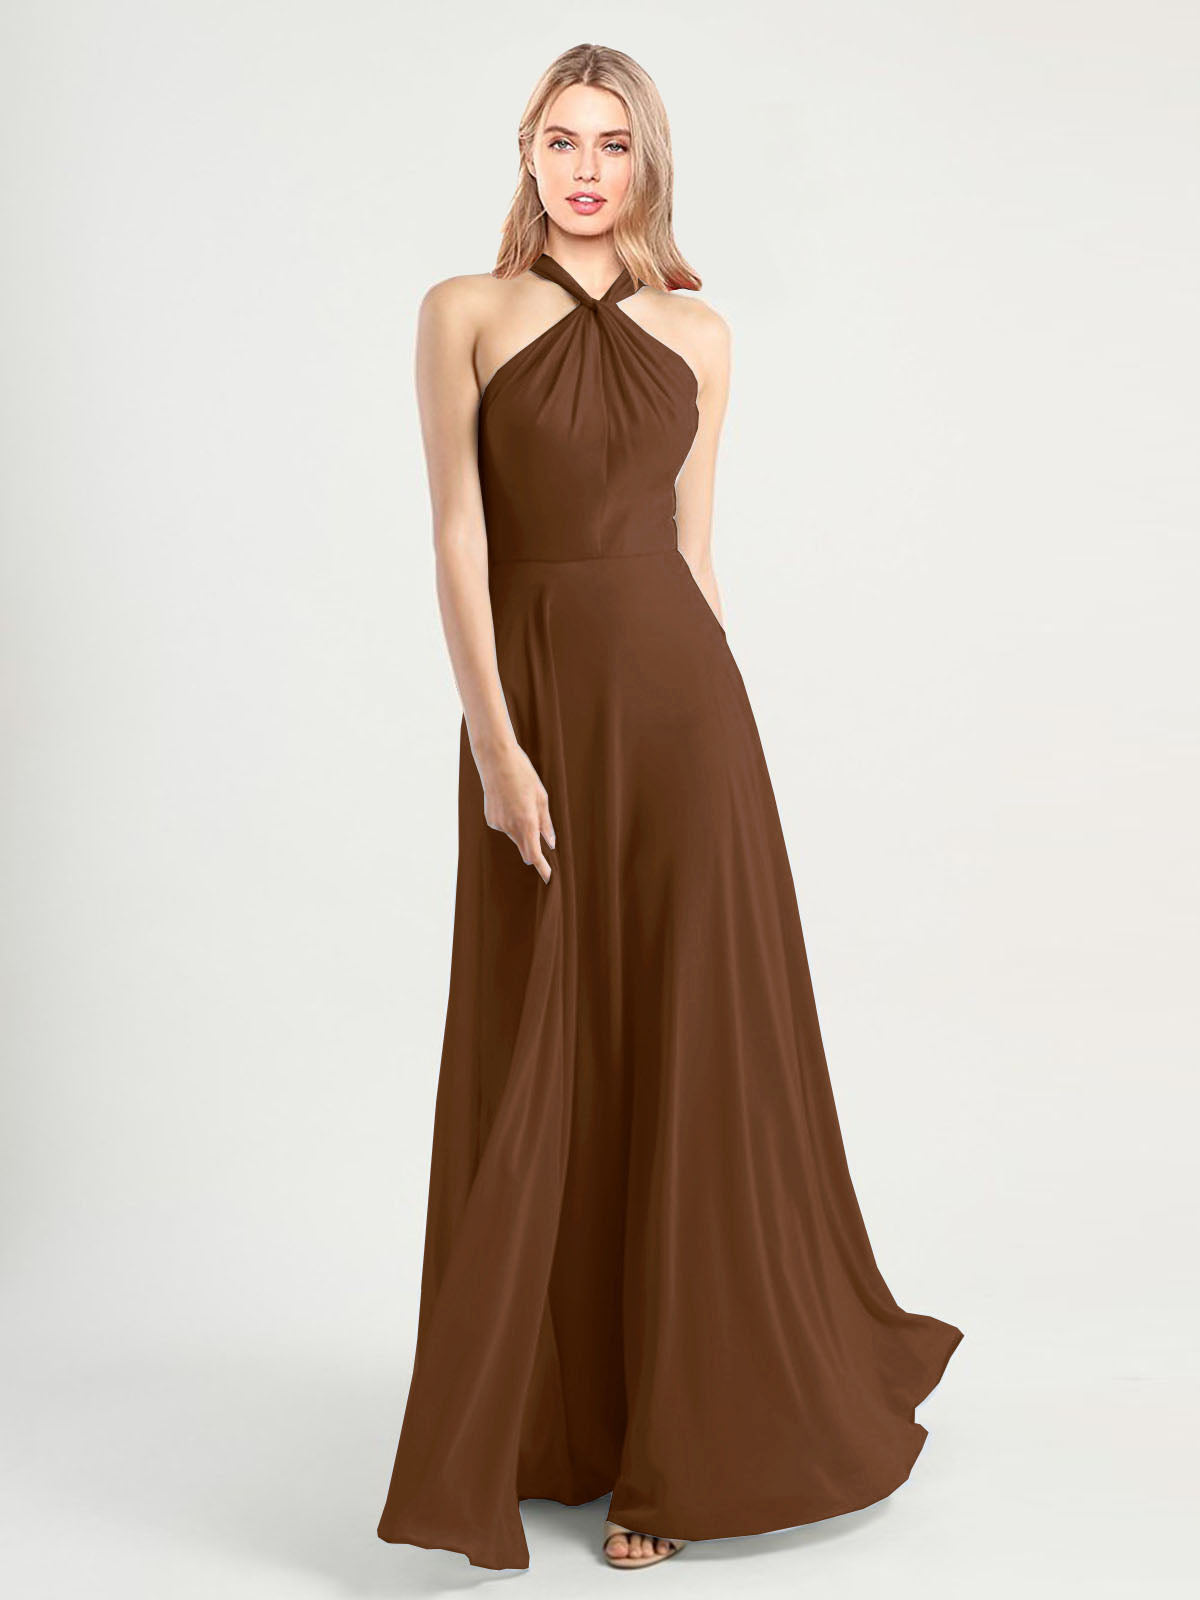 Long A-Line High Neck, Halter Sleeveless Brown Chiffon Bridesmaid Dress Yoli